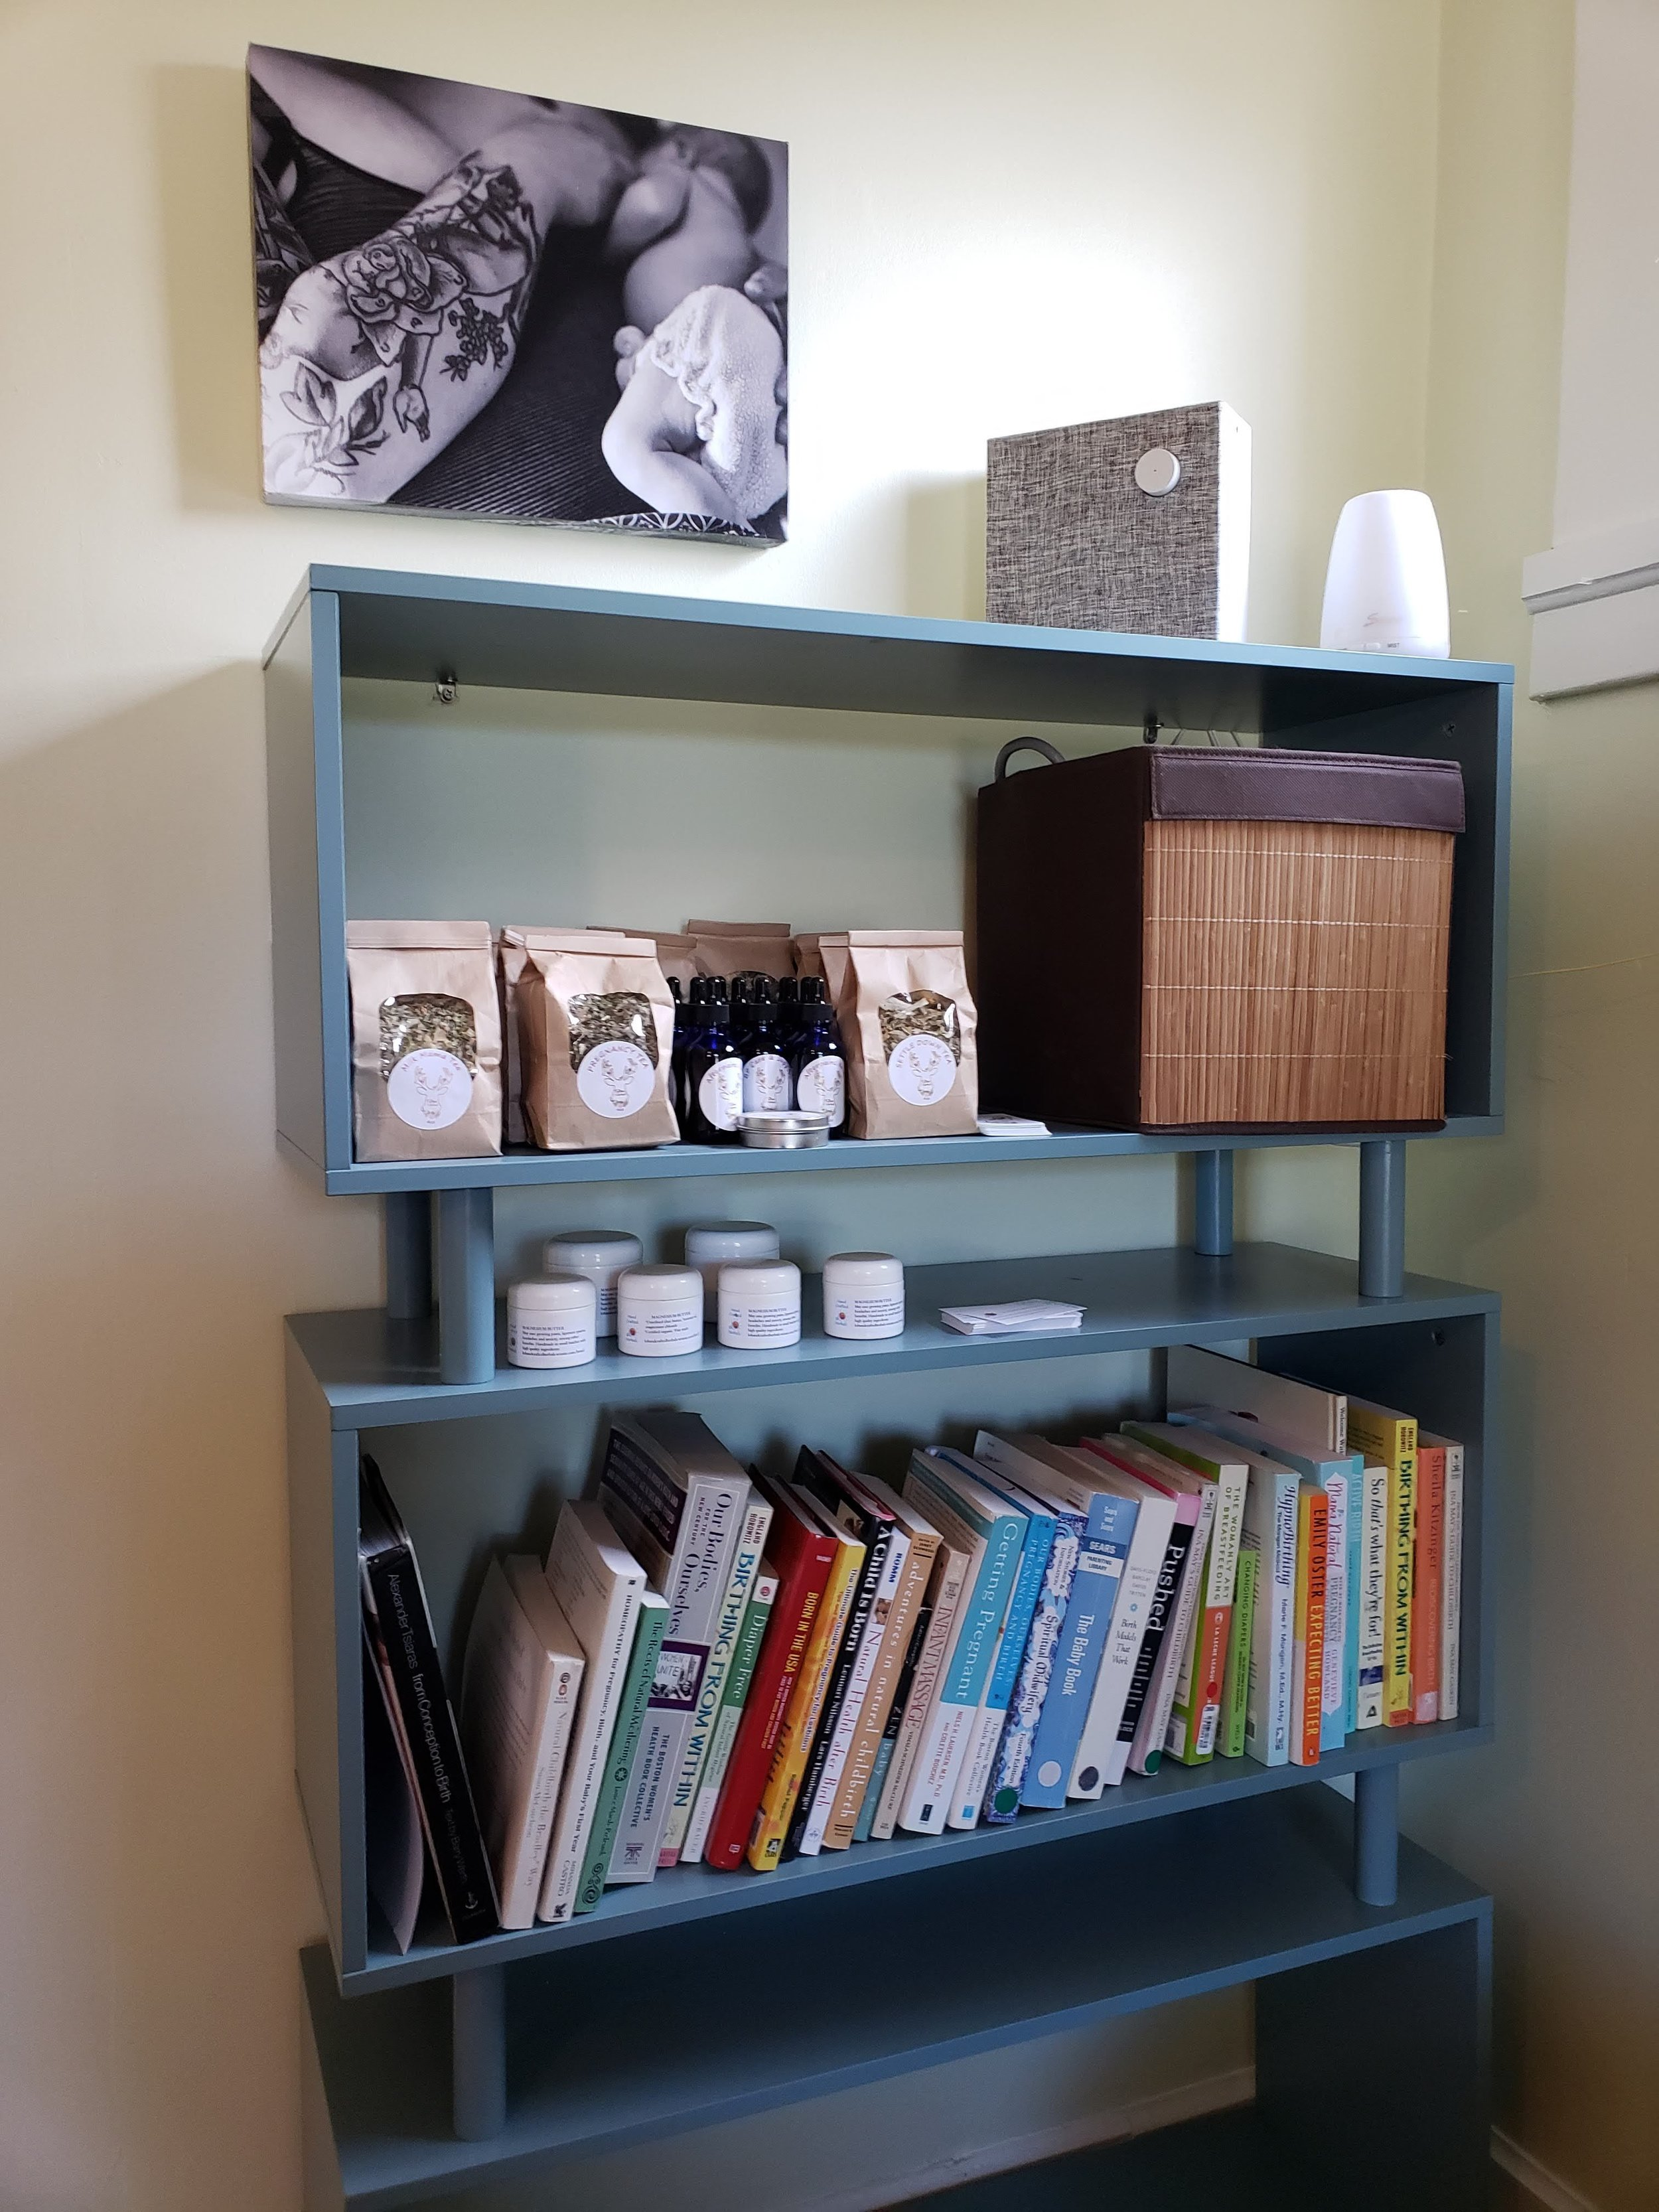 Lending library and herbs